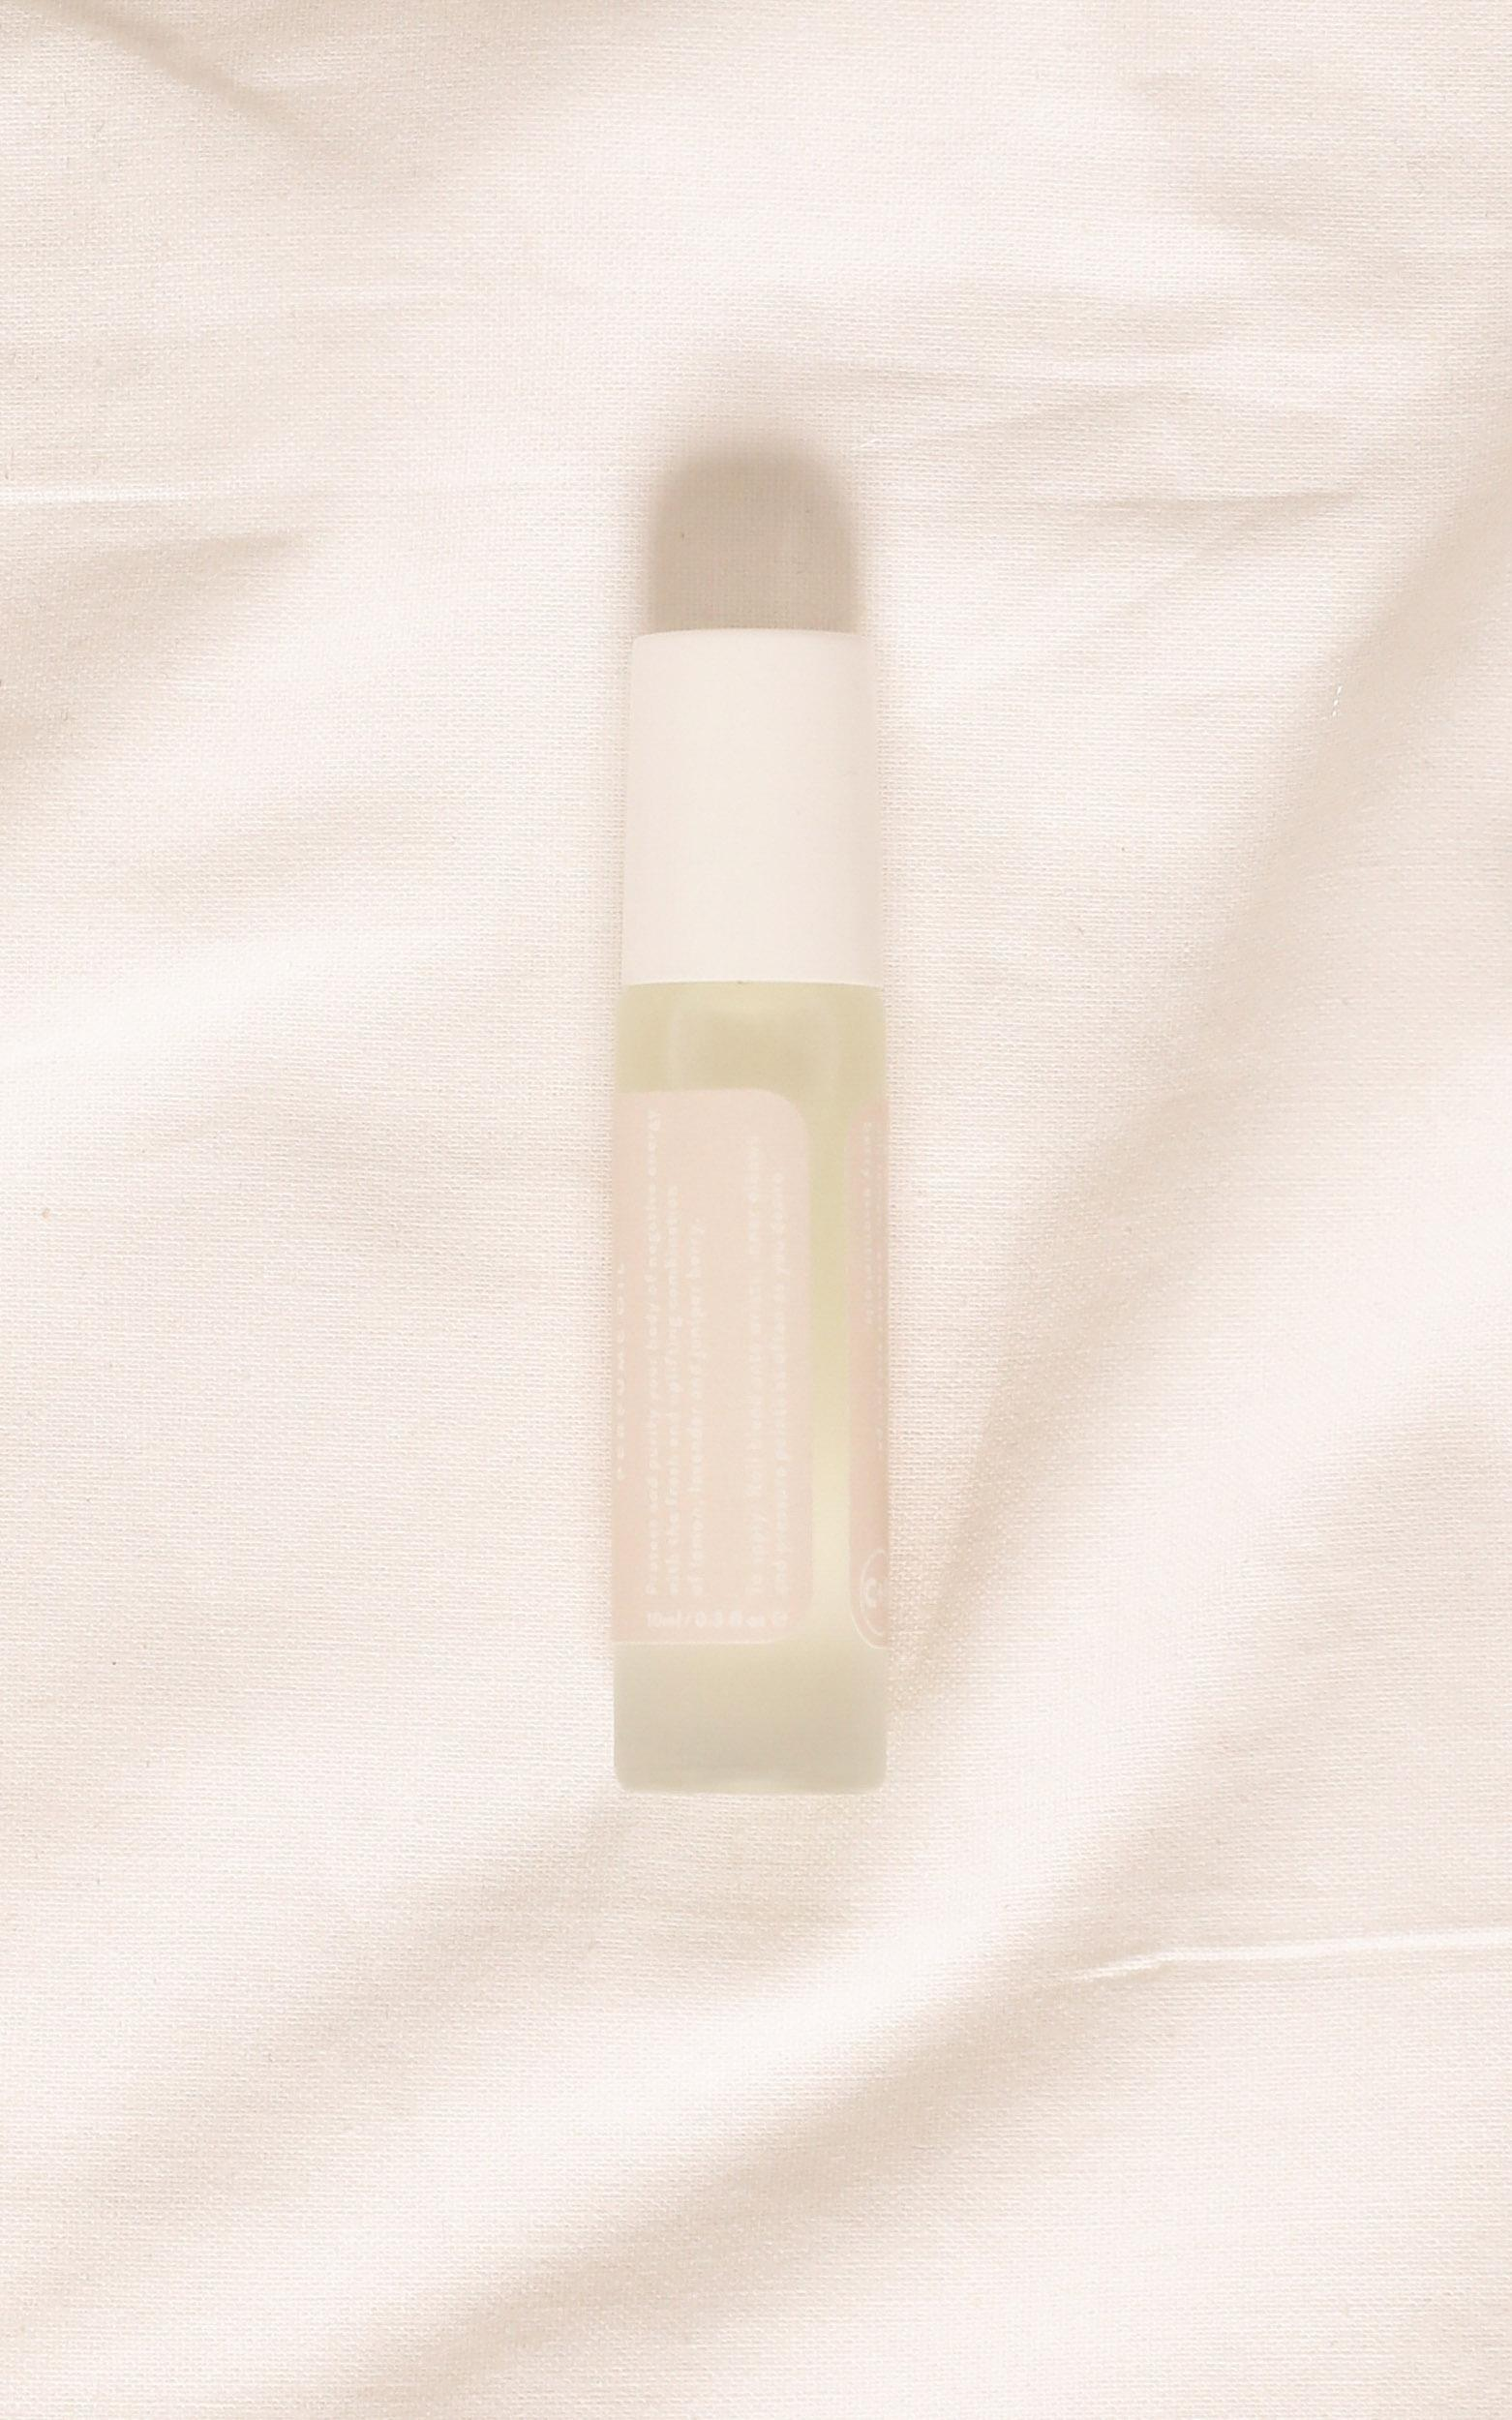 Courtney + Babes - Cleanse Perfume Roller 10ml, Grey, hi-res image number null